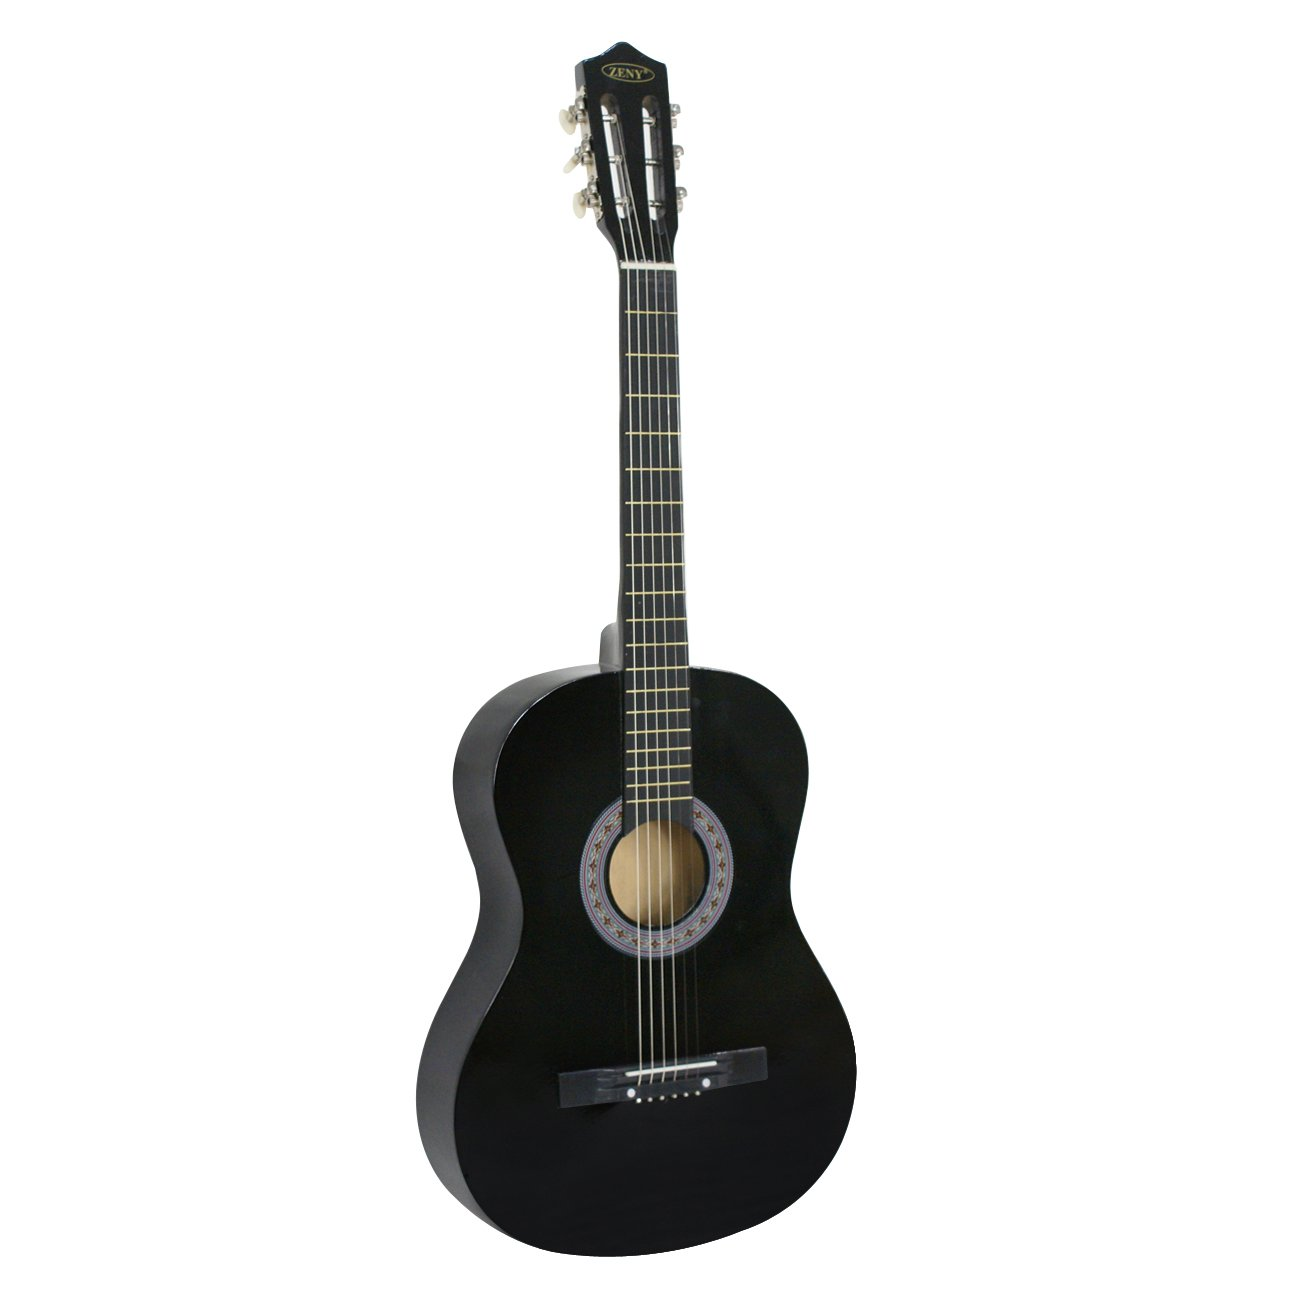 ZENY Beginners 38'' Acoustic Guitar Package Kit for Right-handed Starters Kids Music Lovers w/Case, Strap, Digital E-Tuner, and Pick, Black by ZENY (Image #5)